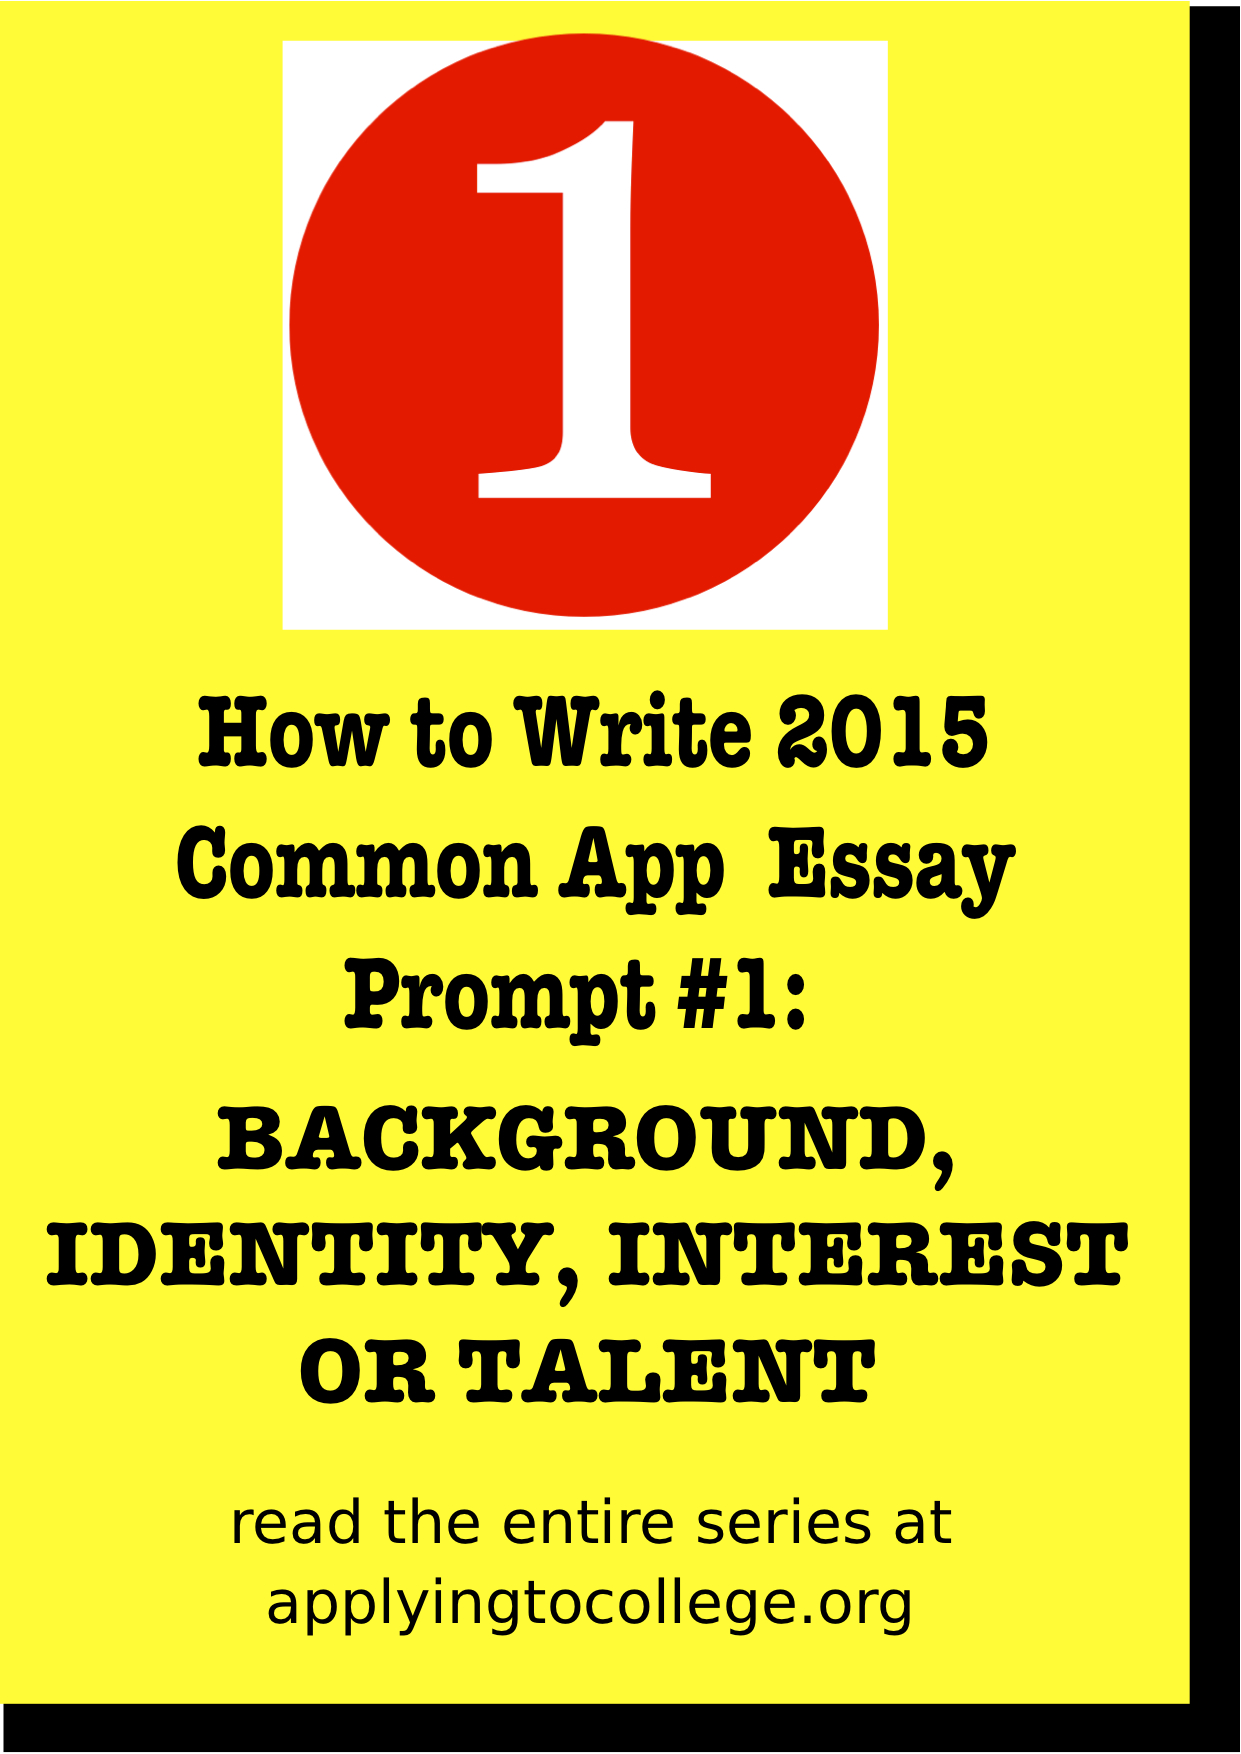 002 Essay Example Common Application Prompts How To Write App Surprising 2015 Full